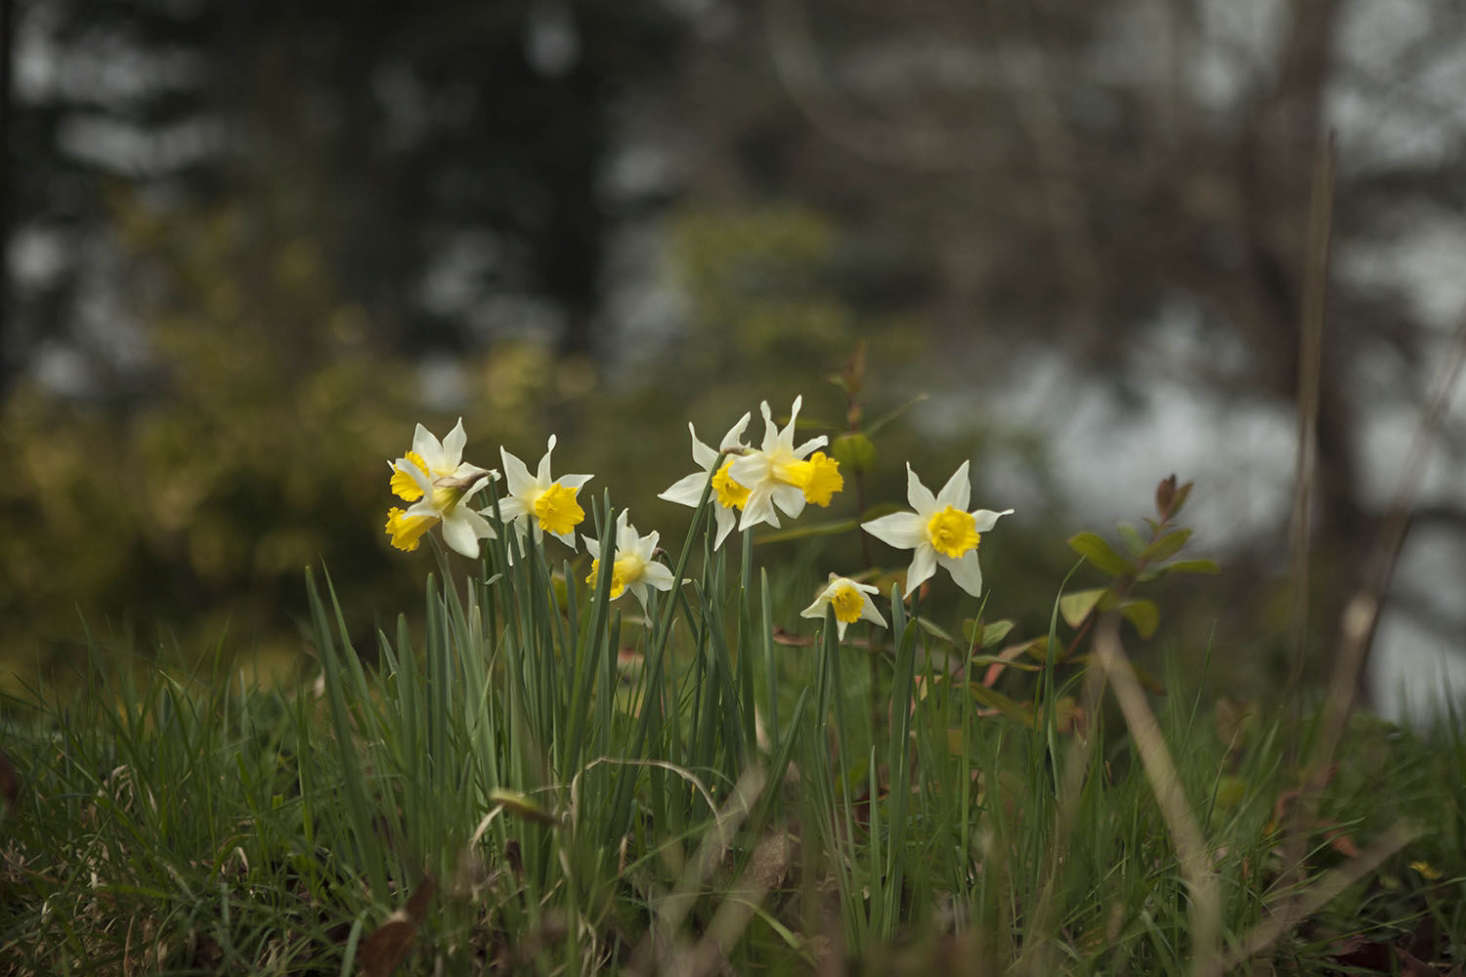 Narcissus at Madresfield Court. See more at Garden Visit: Daffodil Days at Madresfield Court. Photograph by Jim Powell.